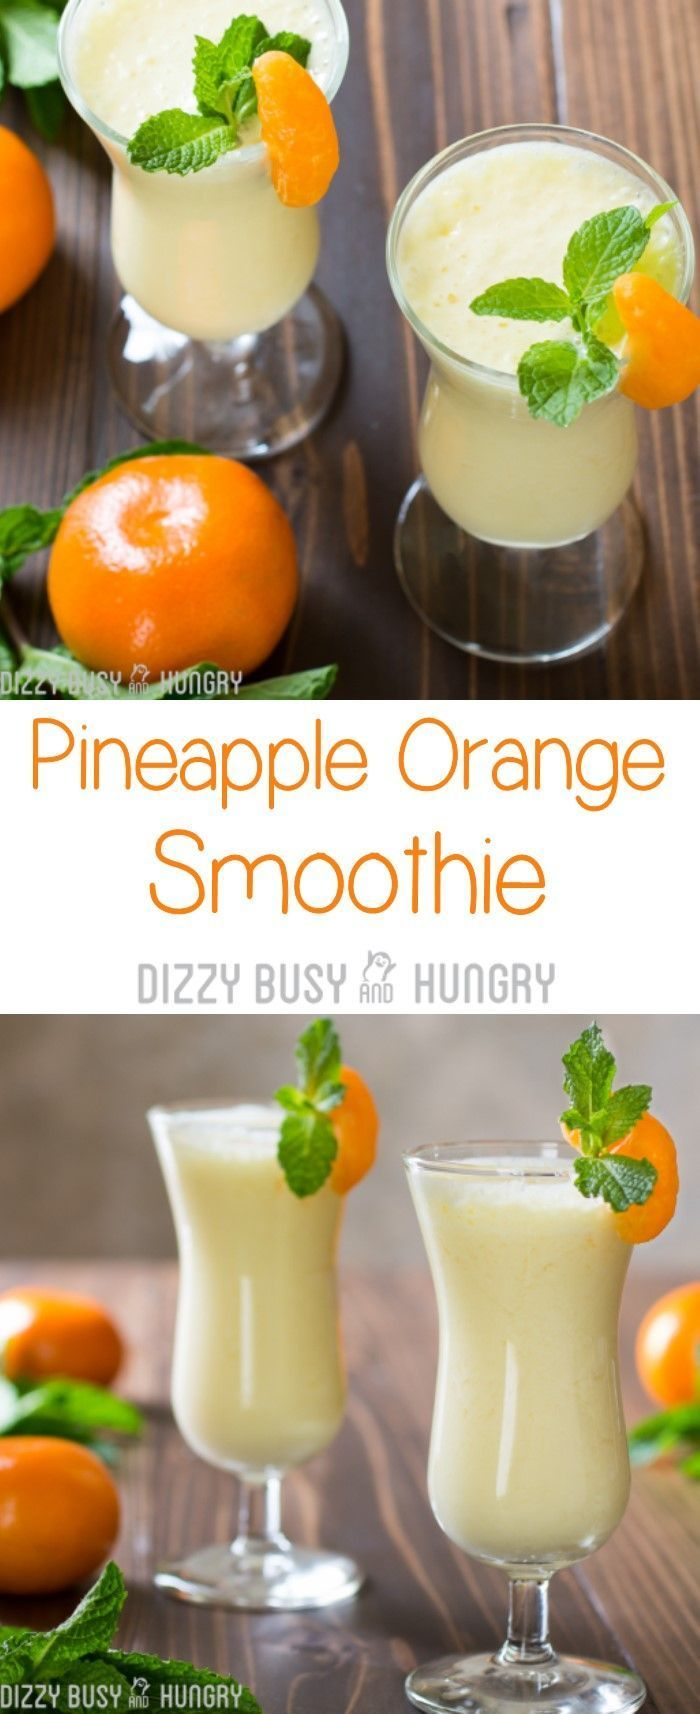 Pineapple Orange Smoothie   DizzyBusyandHungry.com - Brighten your day with this delicious and healthy smoothie recipe, great for breakfast or anytime!